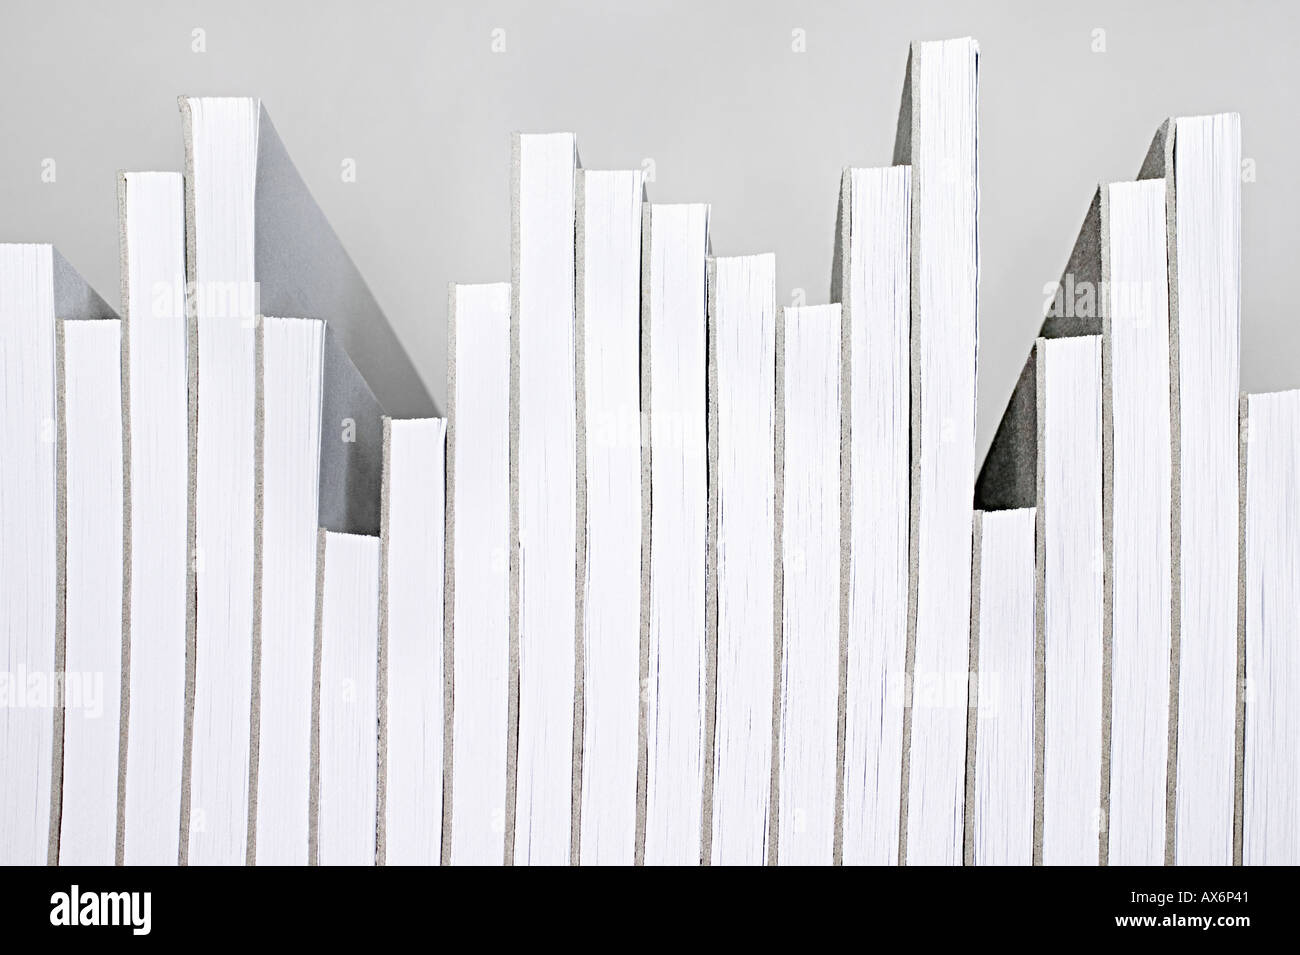 Notepads arranged liked a graph Stock Photo